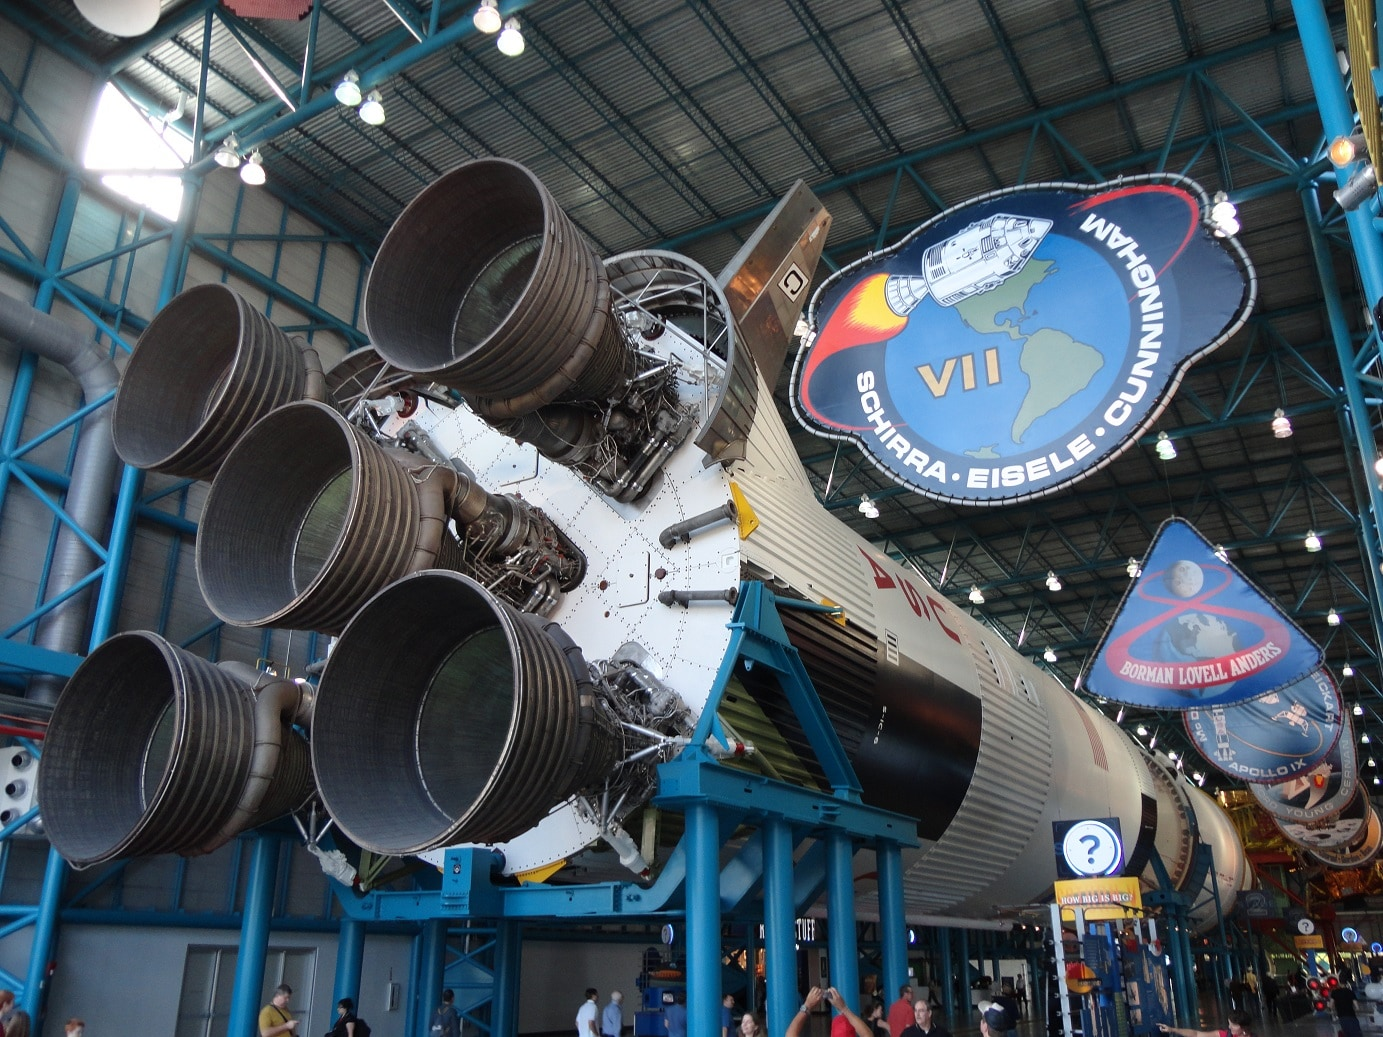 Day Tour of Kennedy Space Center in Orlando [English guide / carpool, including tickets]